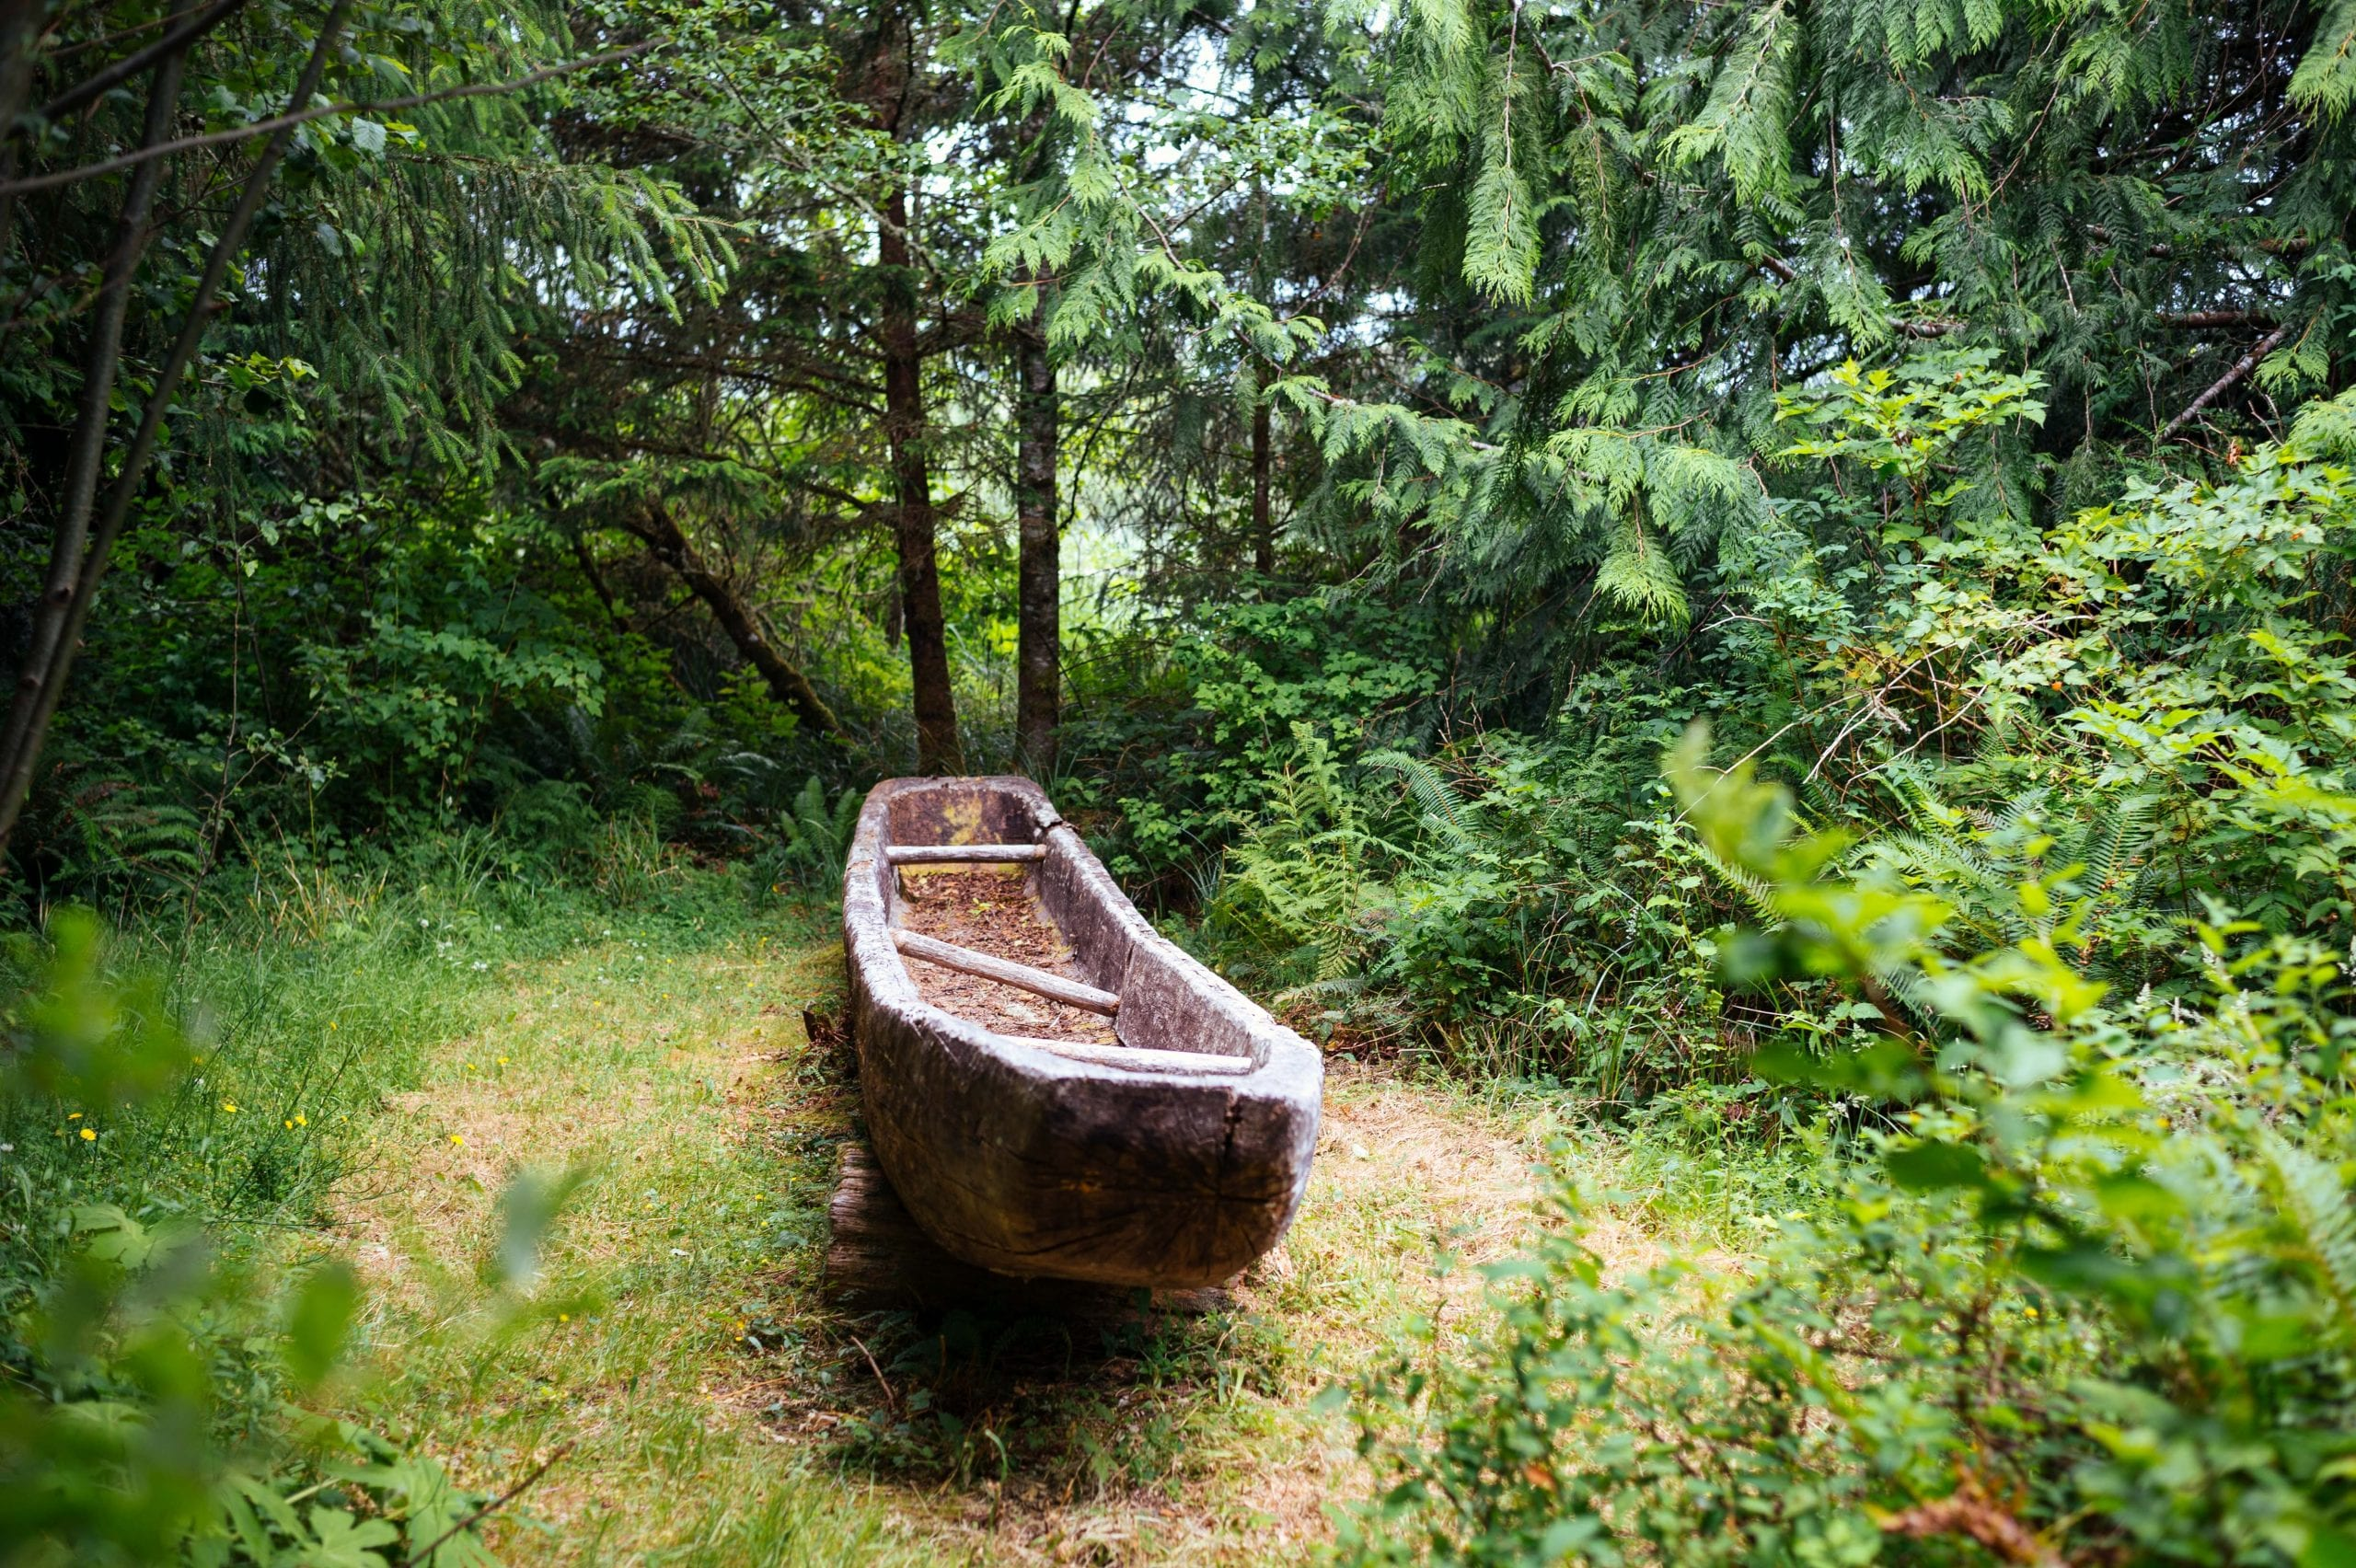 ART OF TRANSIT: Replica of a dugout canoe used by Lewis and Clark and the Corps of Discovery at Fort Clatsop National Historic Park near Astoria, Oregon. The explorers spent the soggy winter of 1805-06 at the fort. While I normally would offer massive hugs to our friends at the National Park Service, I thought the visitor center was just so-so and could have been so much better with some imagination (and Benjamins). Photo: Steve Hymon.